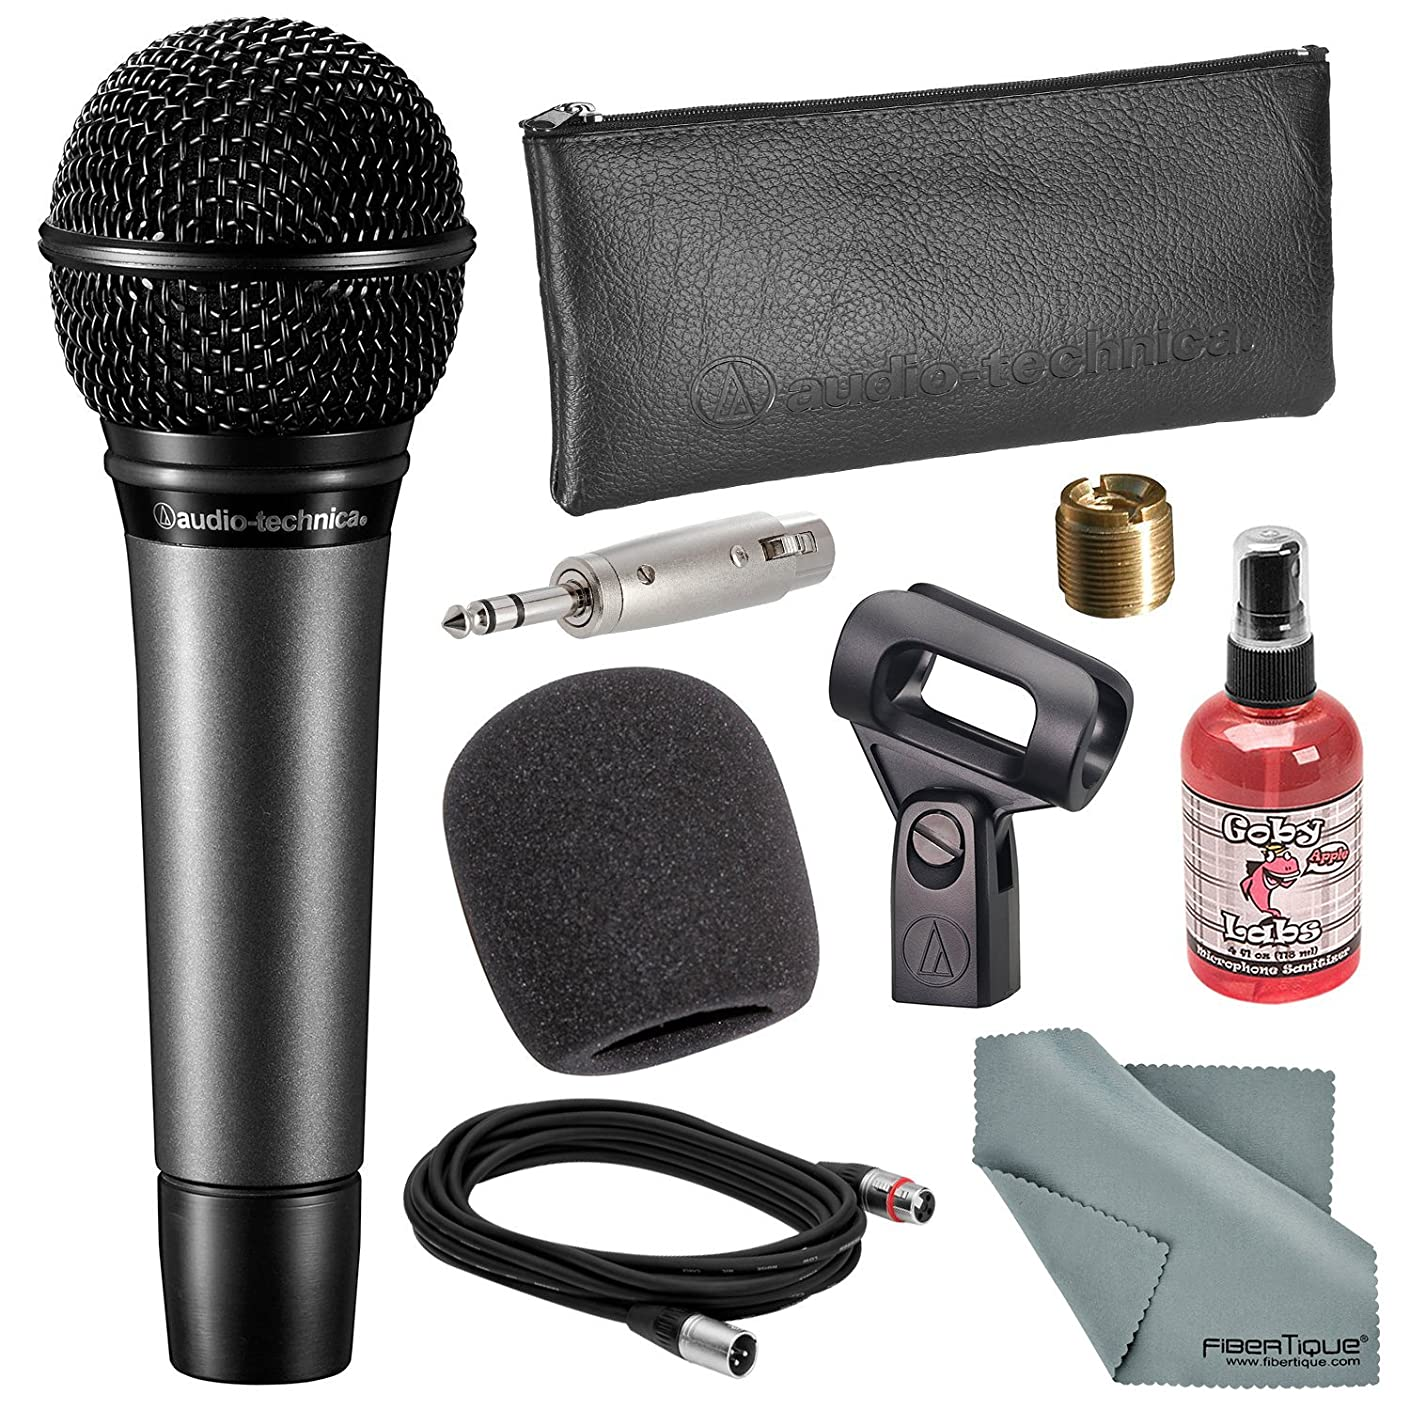 Audio-Technica ATM410 Cardioid Handheld Vocal Microphone Bundle with Windscreen + Mic Sanitizer + Adapter + XLR Cable + Fibertique Cloth